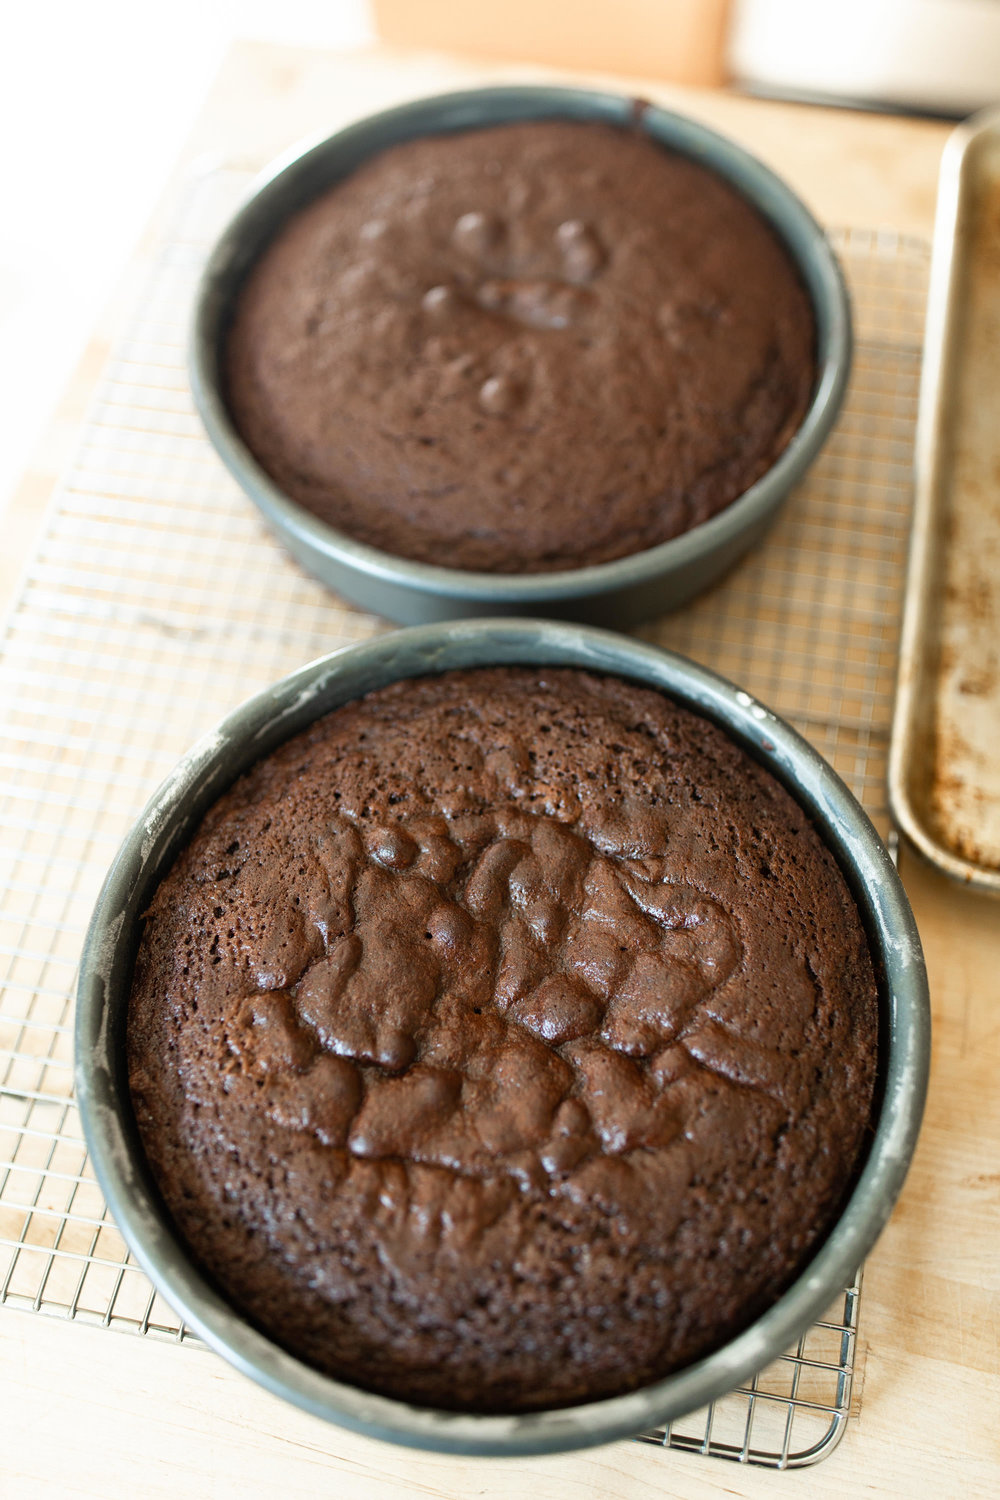 Chocolate Cakes Coming Out Of The Oven